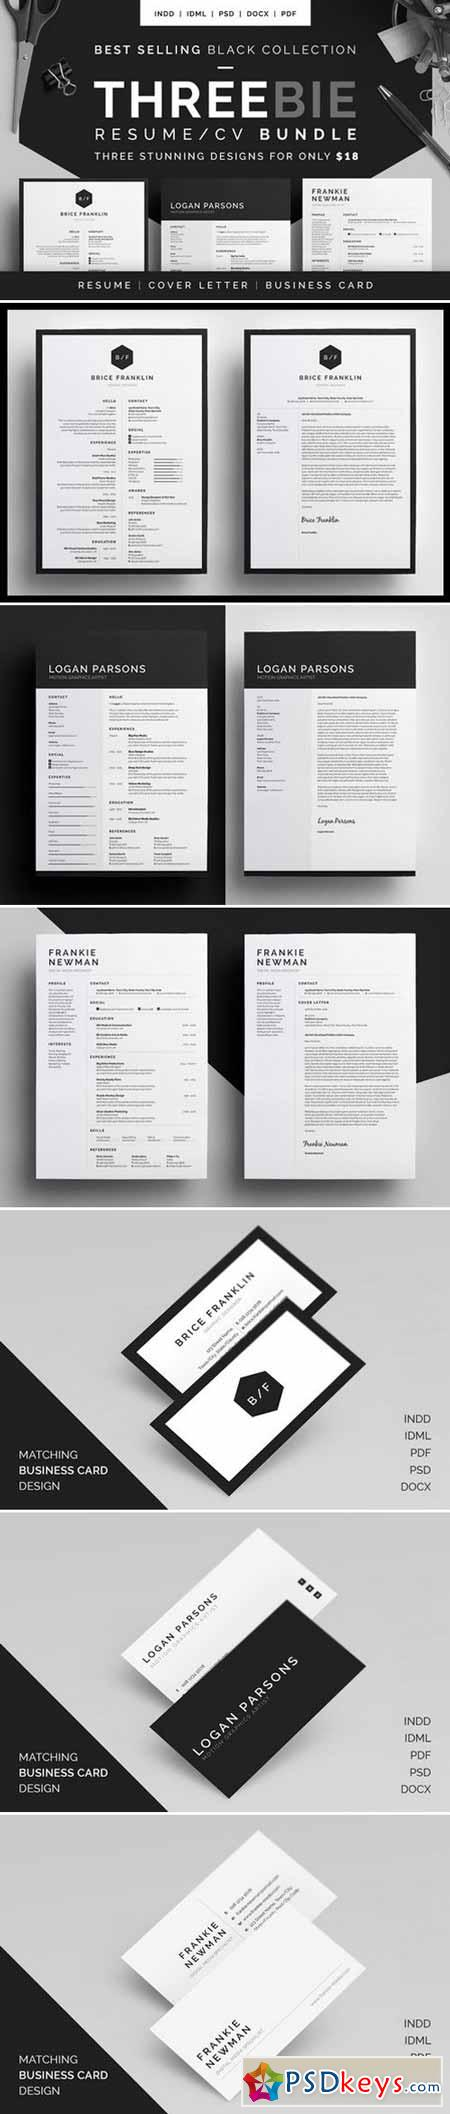 Resume CV - Threebie Bundle 3 433187